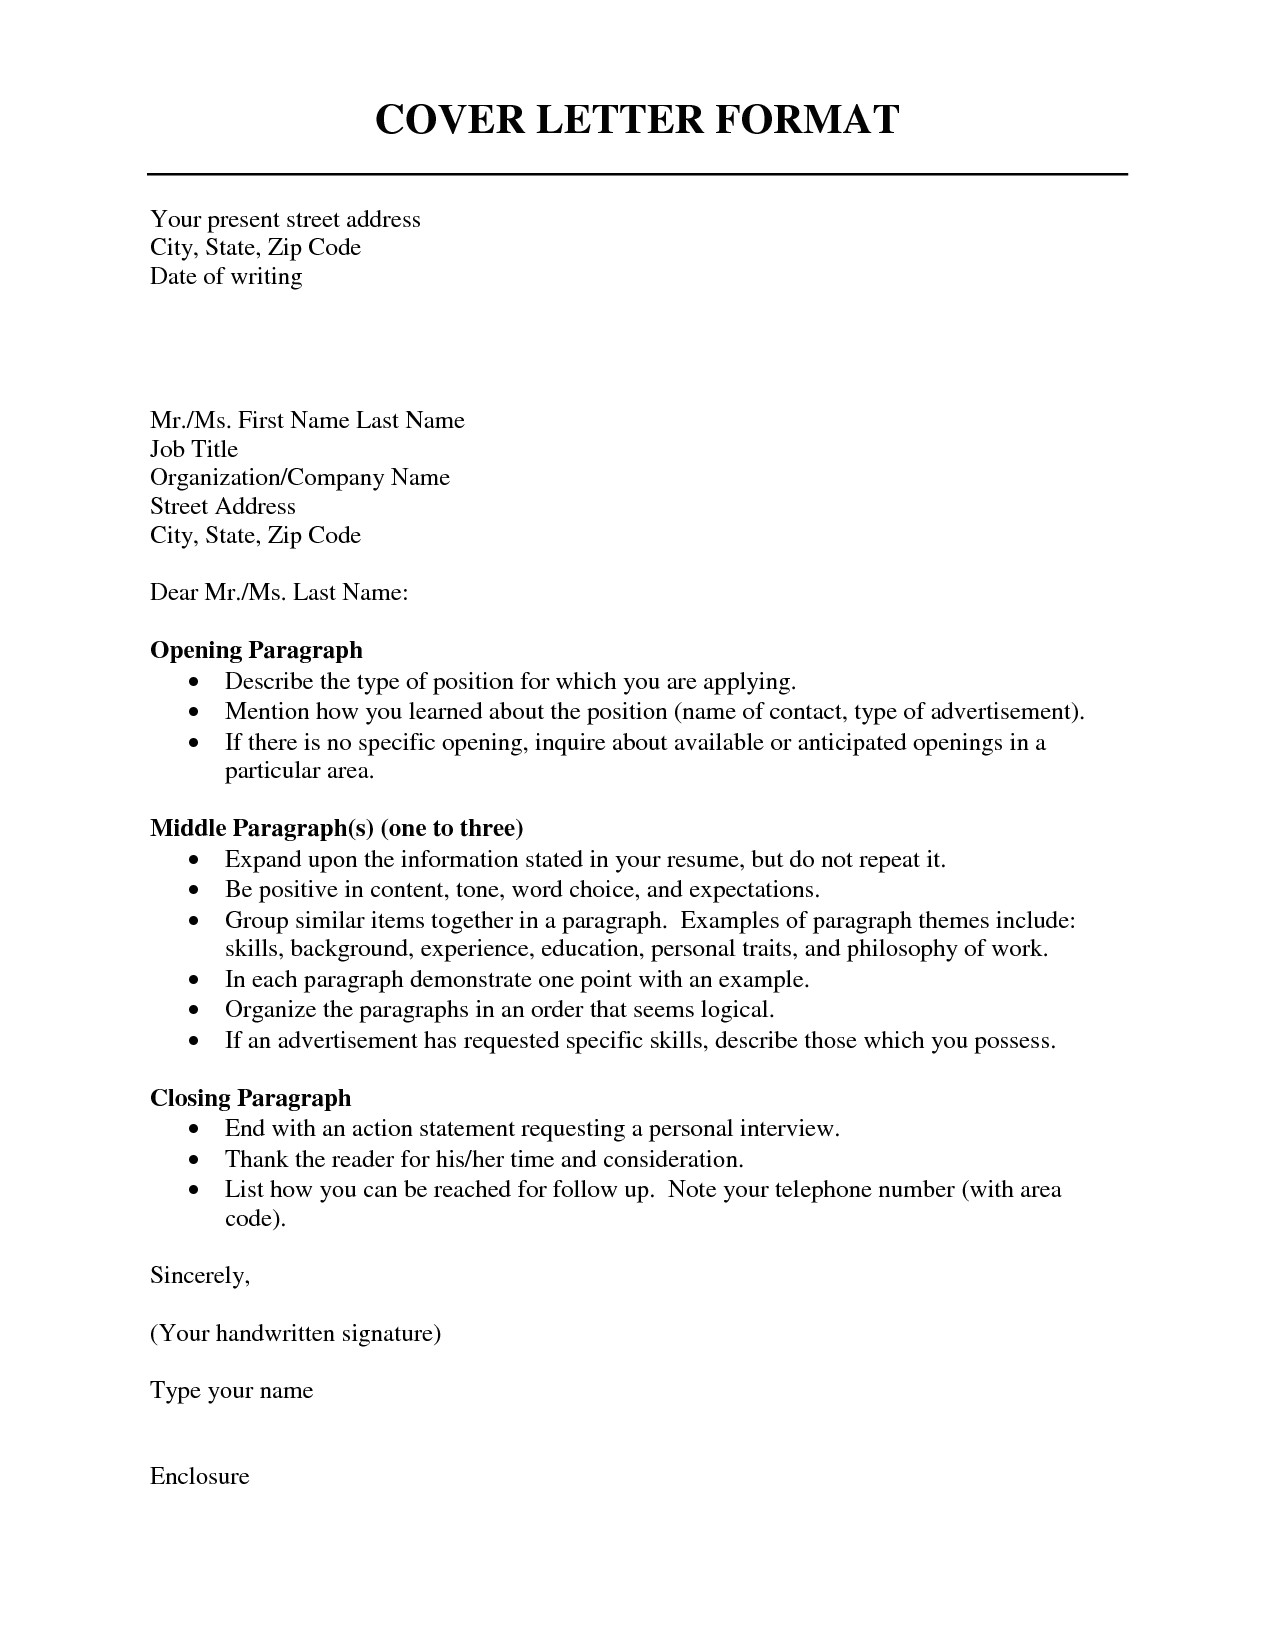 What Information Goes In A Cover Letter Correct Cover Letter format Best Template Collection